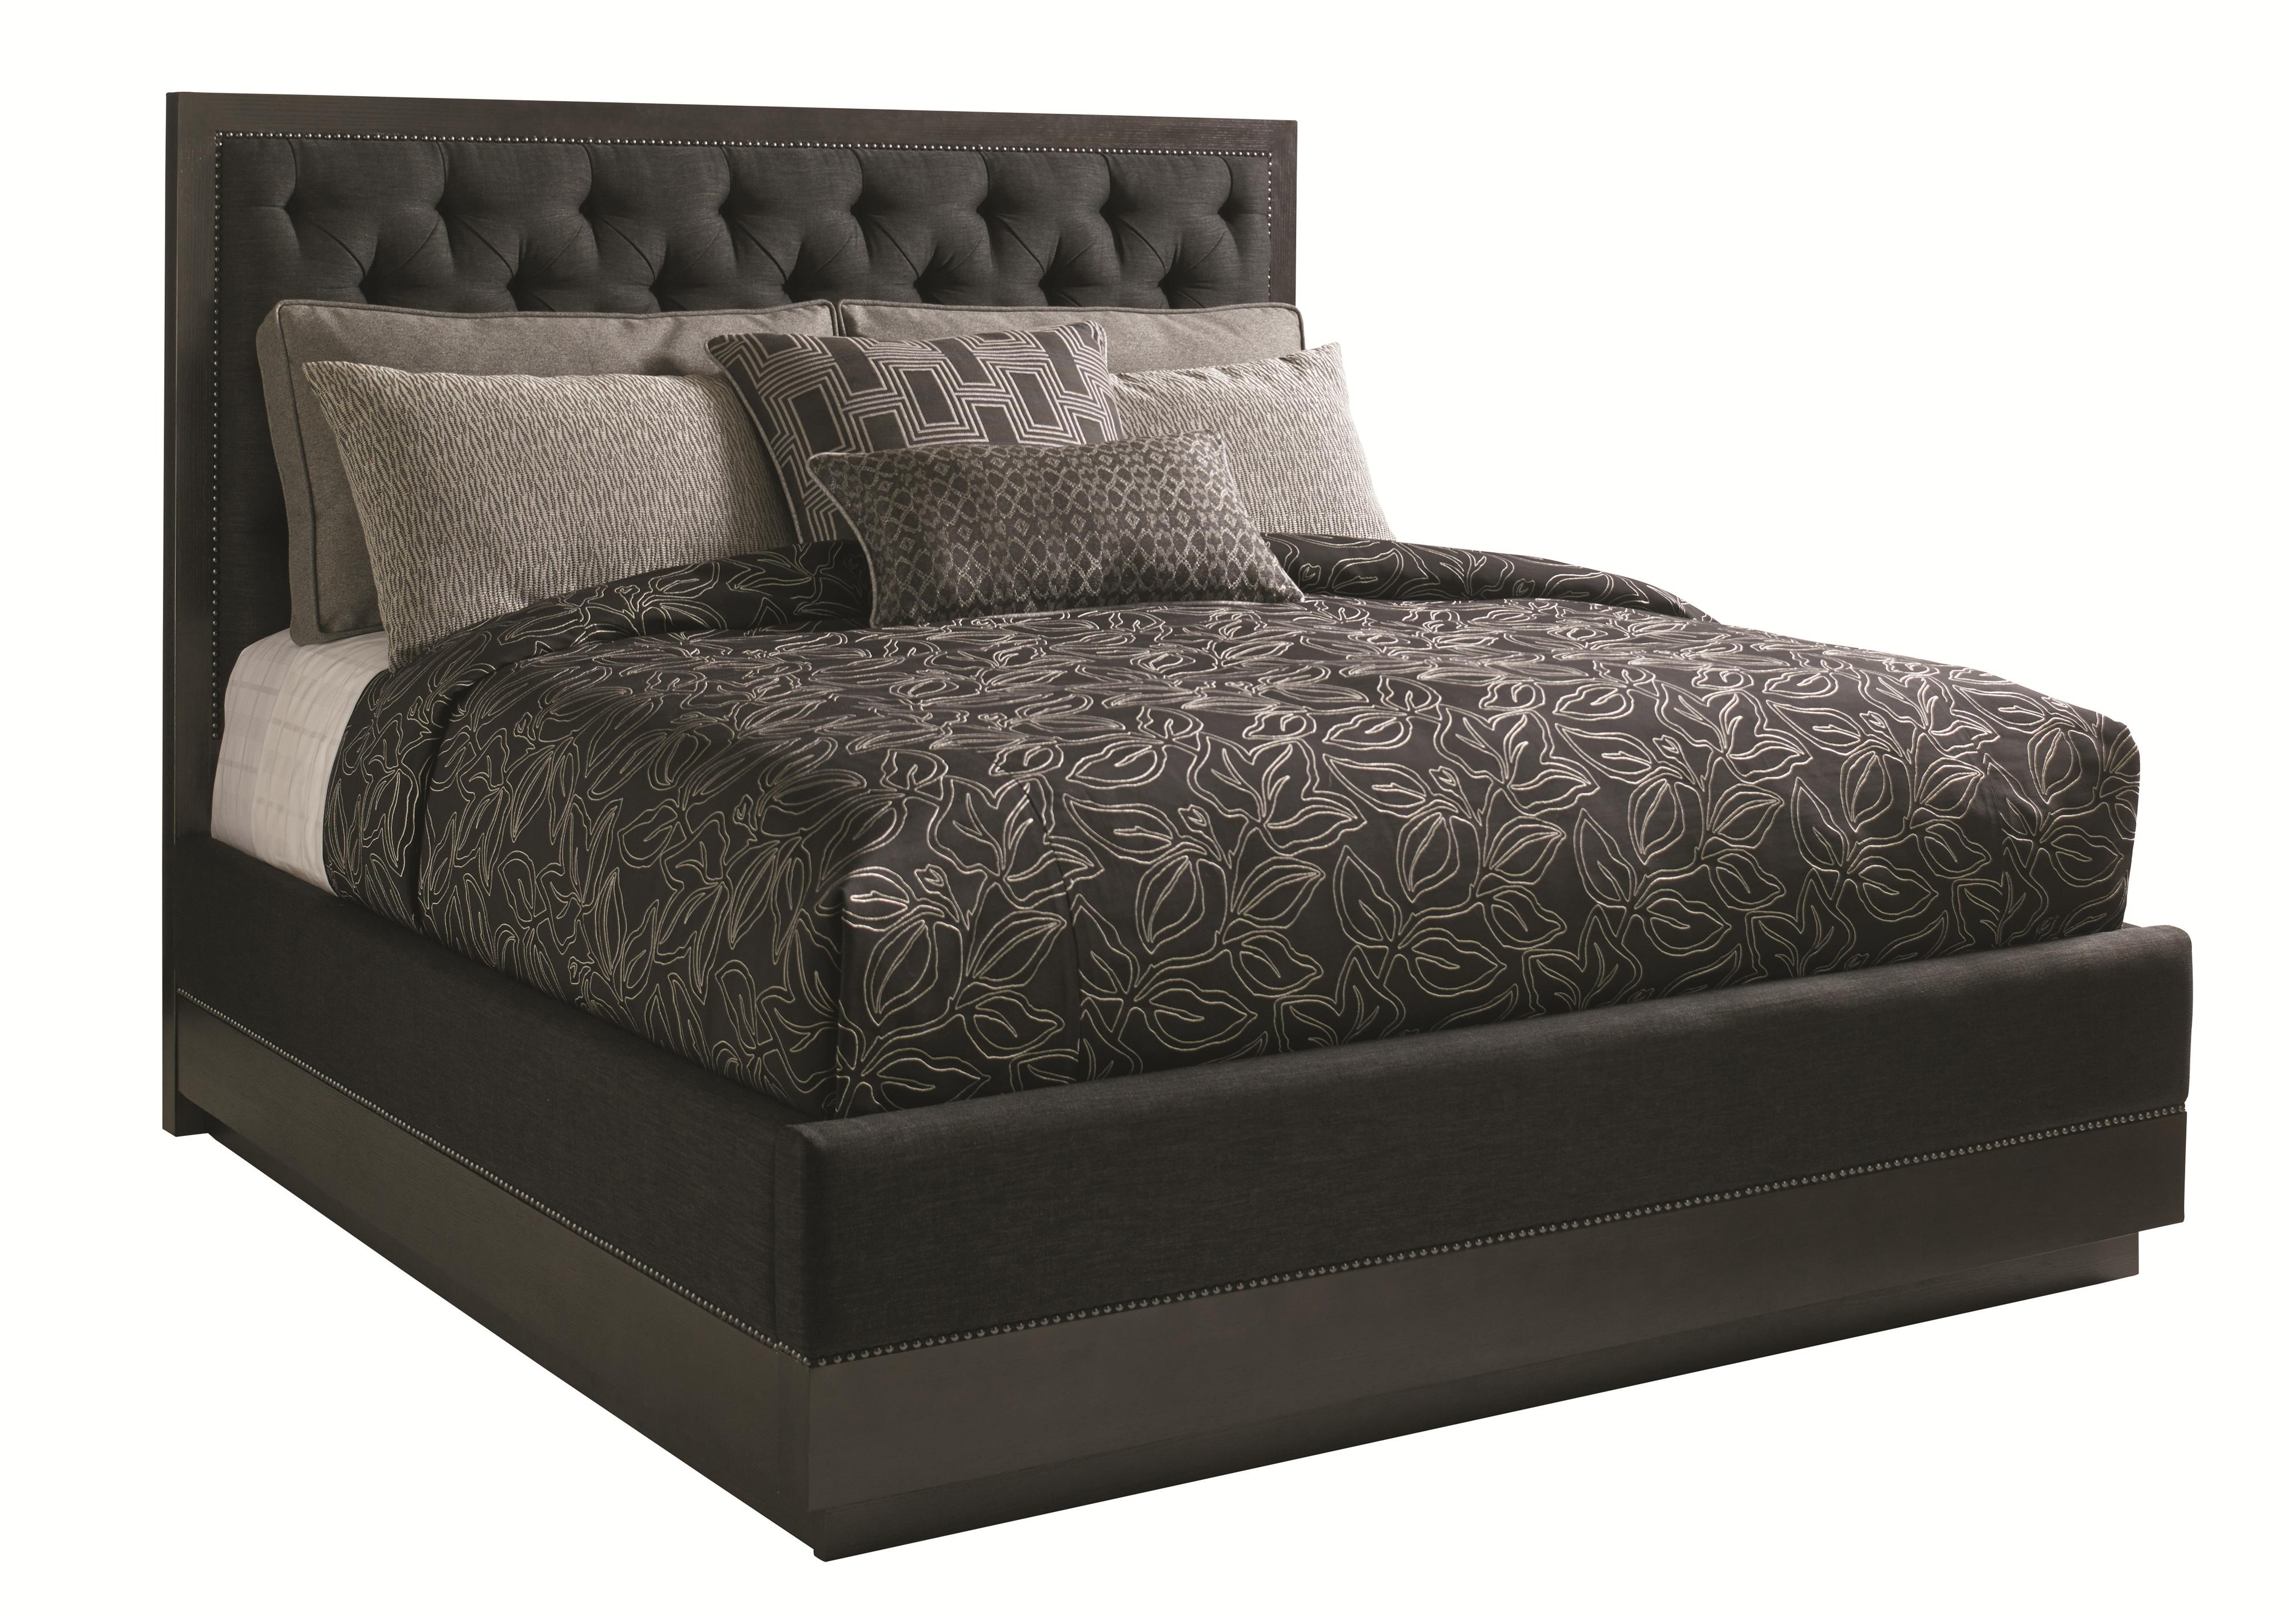 Carrera Complete 6/6 Maranello Upholstered Bed by Lexington at Johnny Janosik